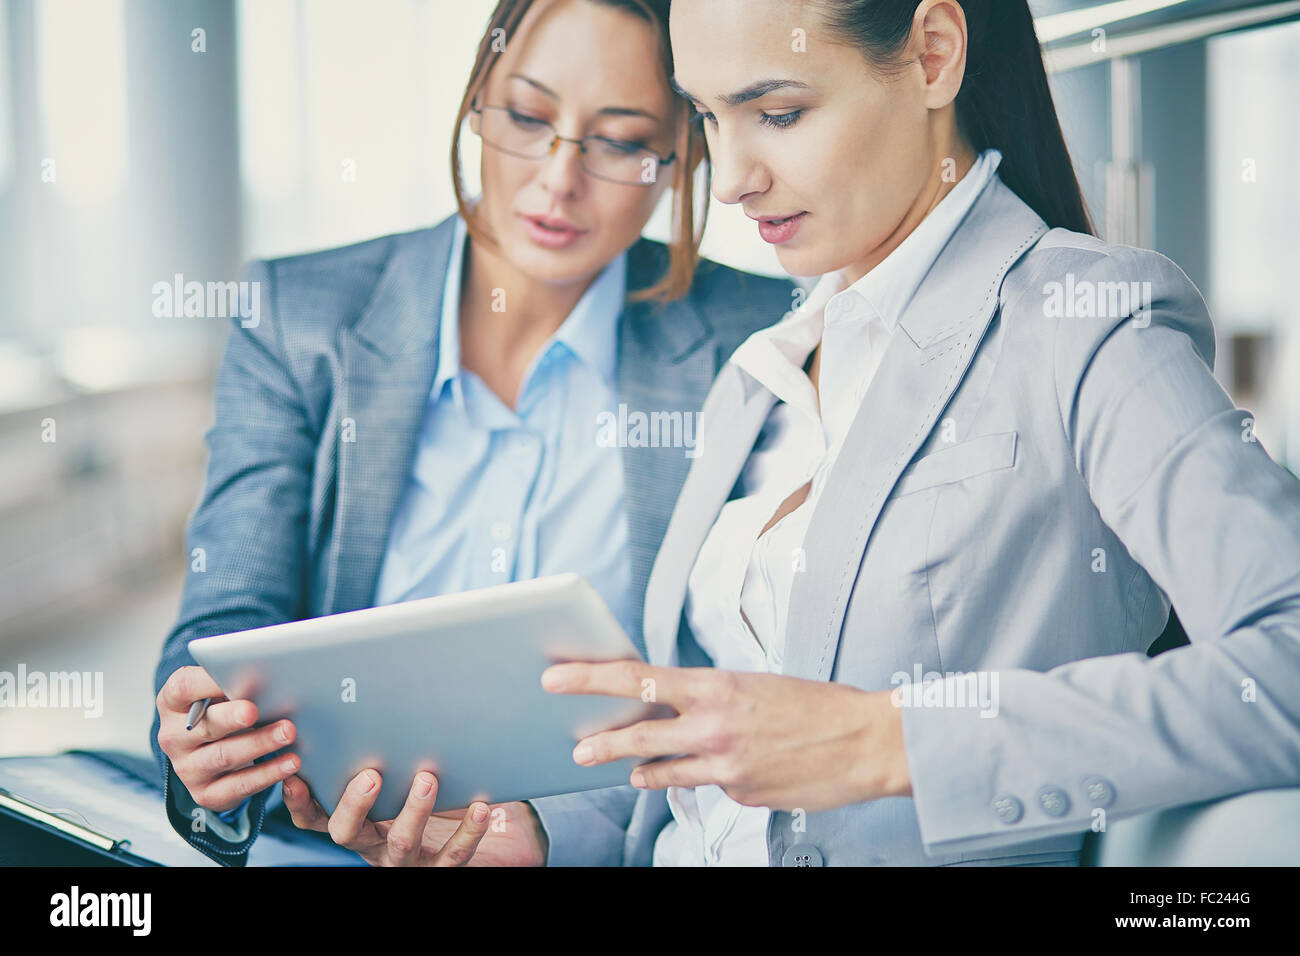 Two young businesswomen networking and discussing data - Stock Image